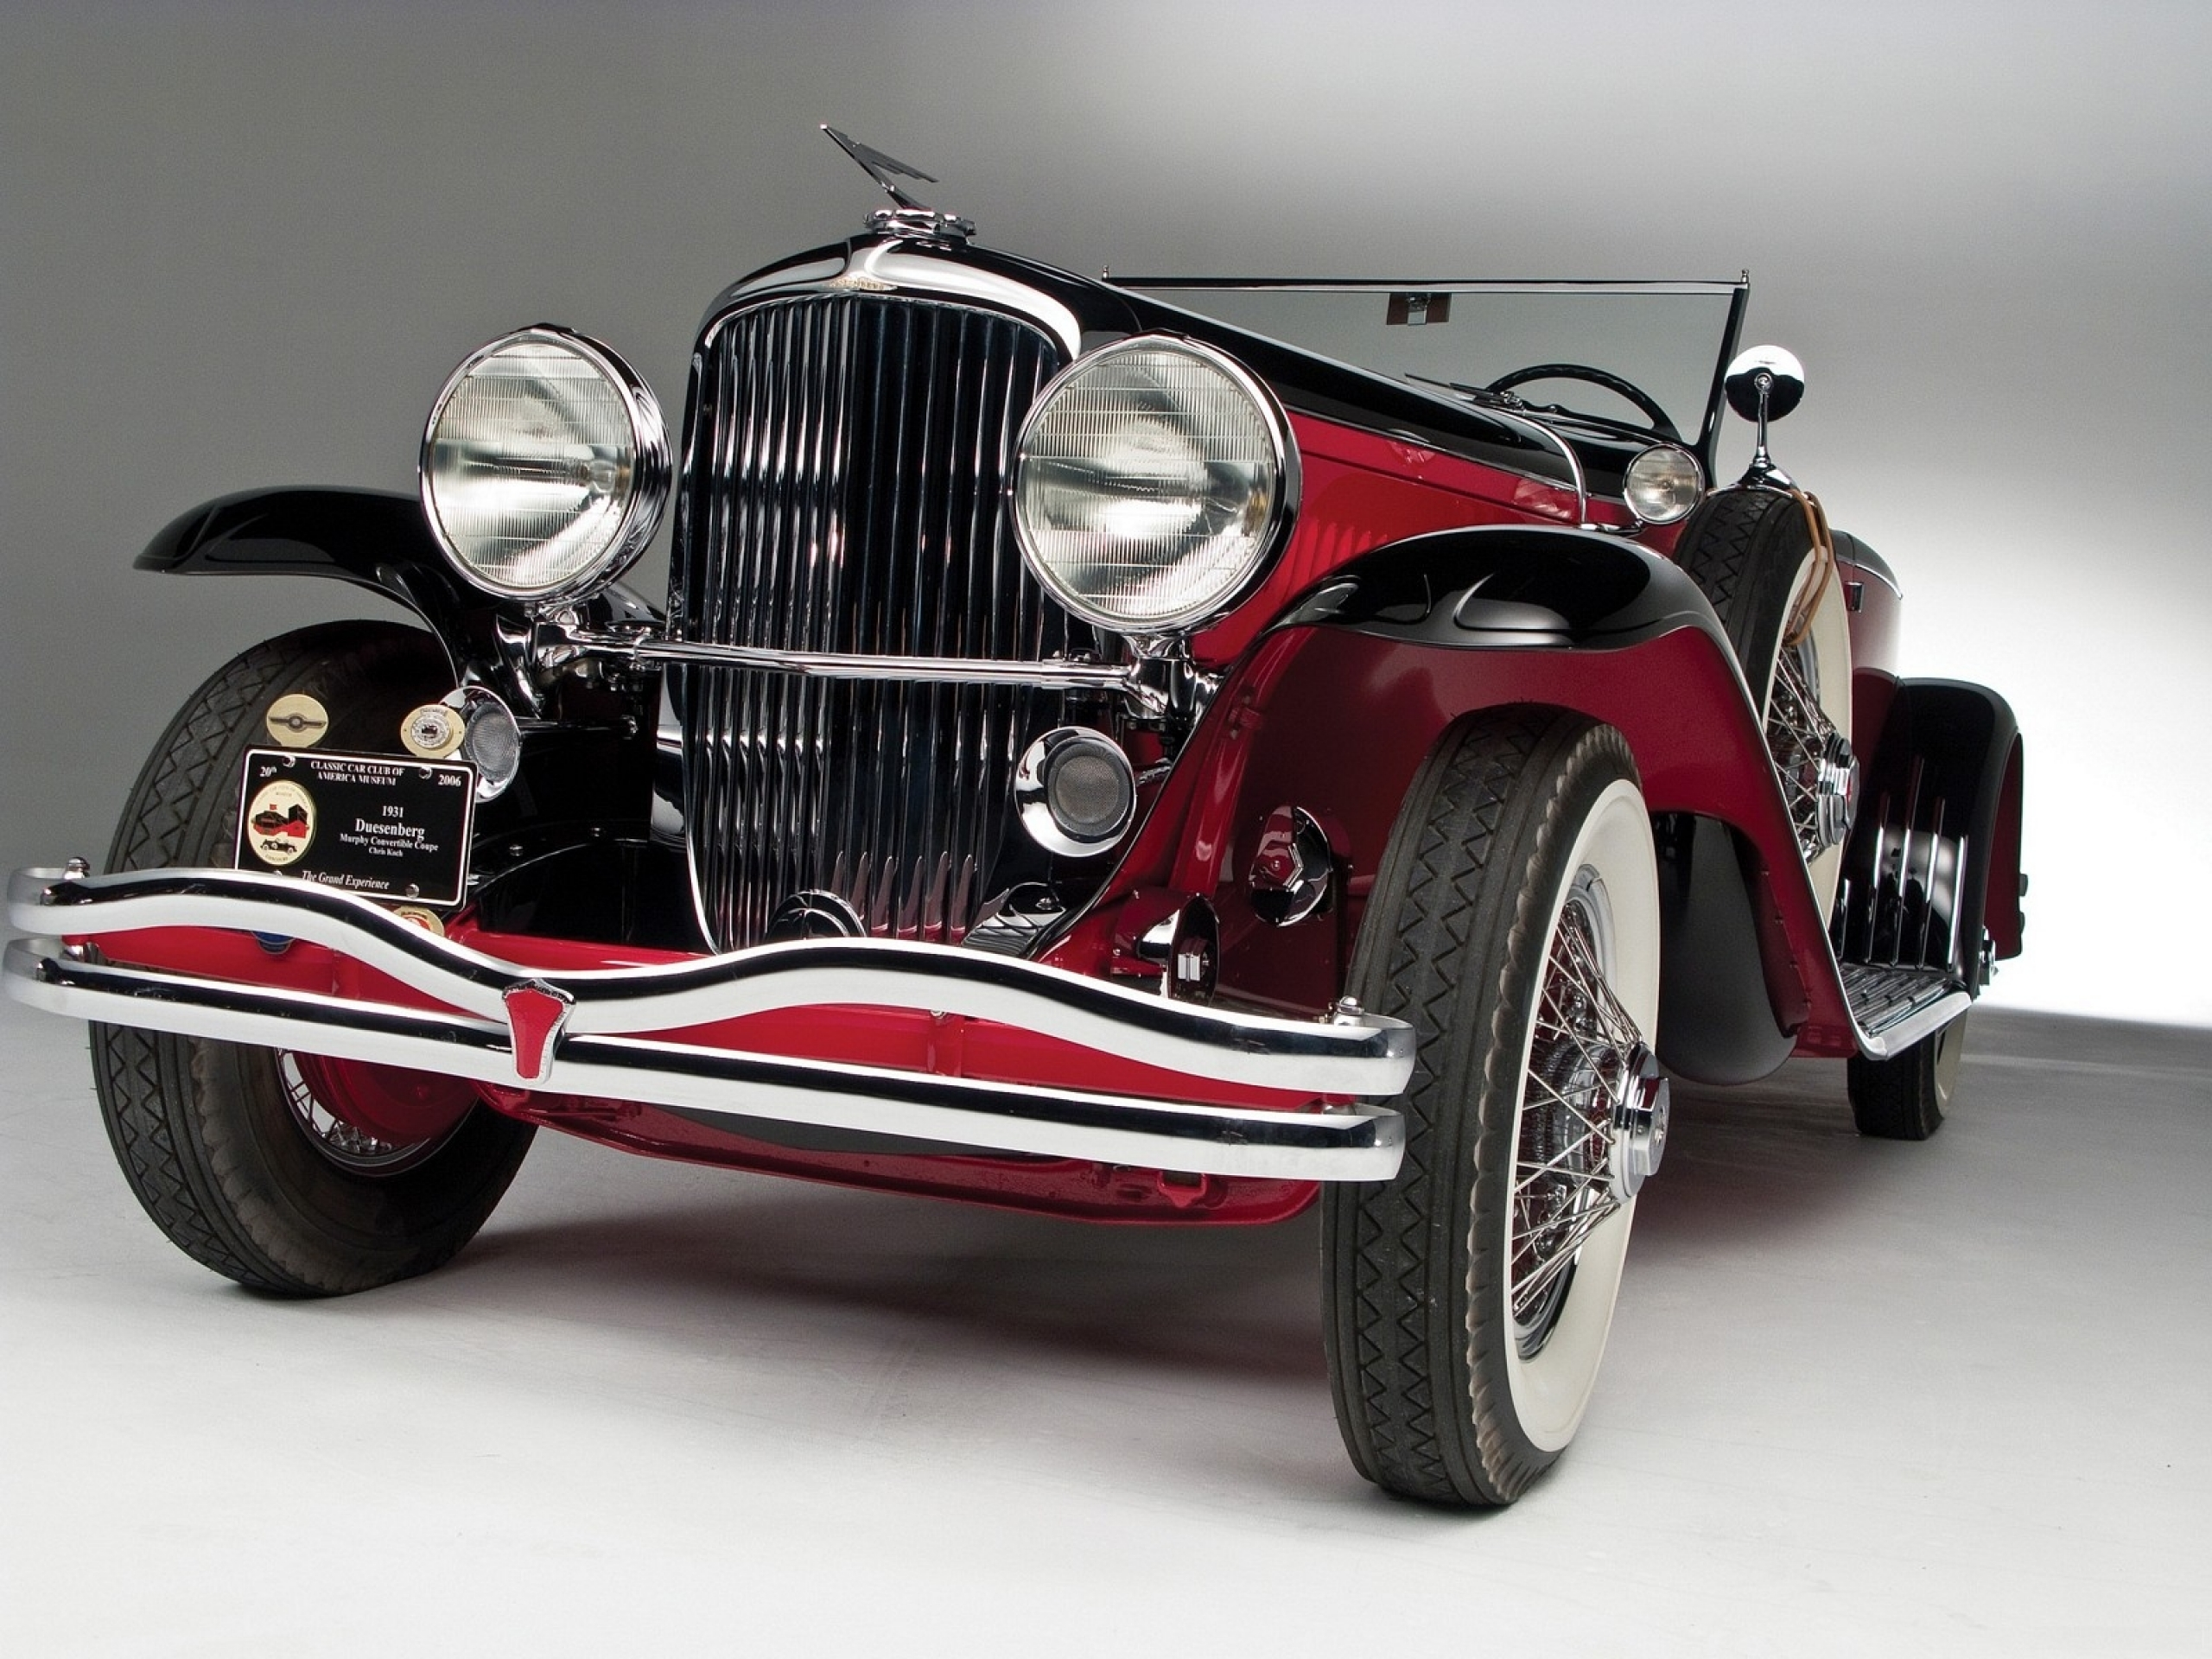 duesenberg vintage car wallpapers - photo #3